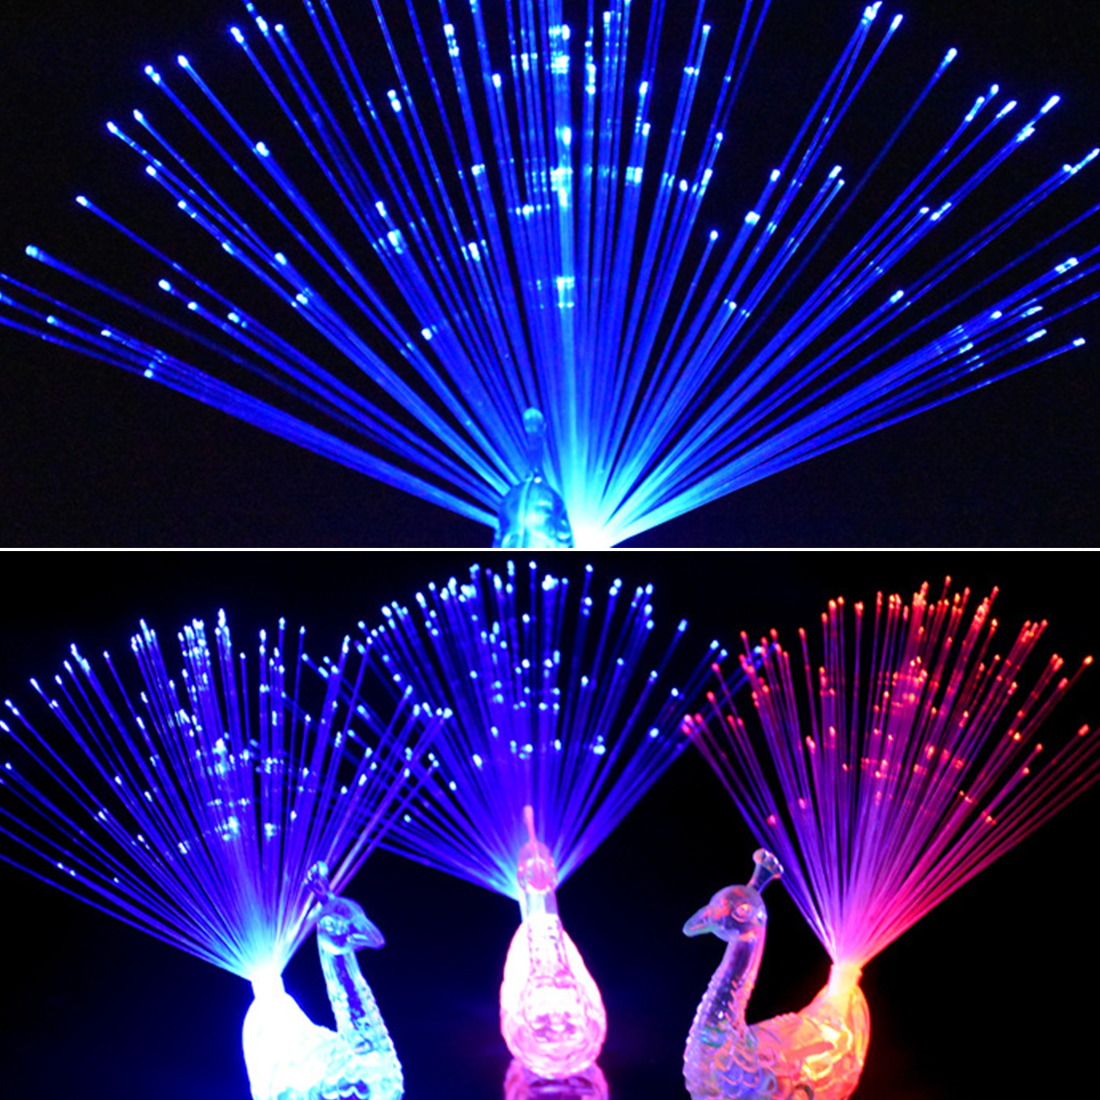 Colorful LED Light-up Rings Party Gadgets Kids Intelligent Toy 1pc Peacock Finger Light For Party Gift Color Random